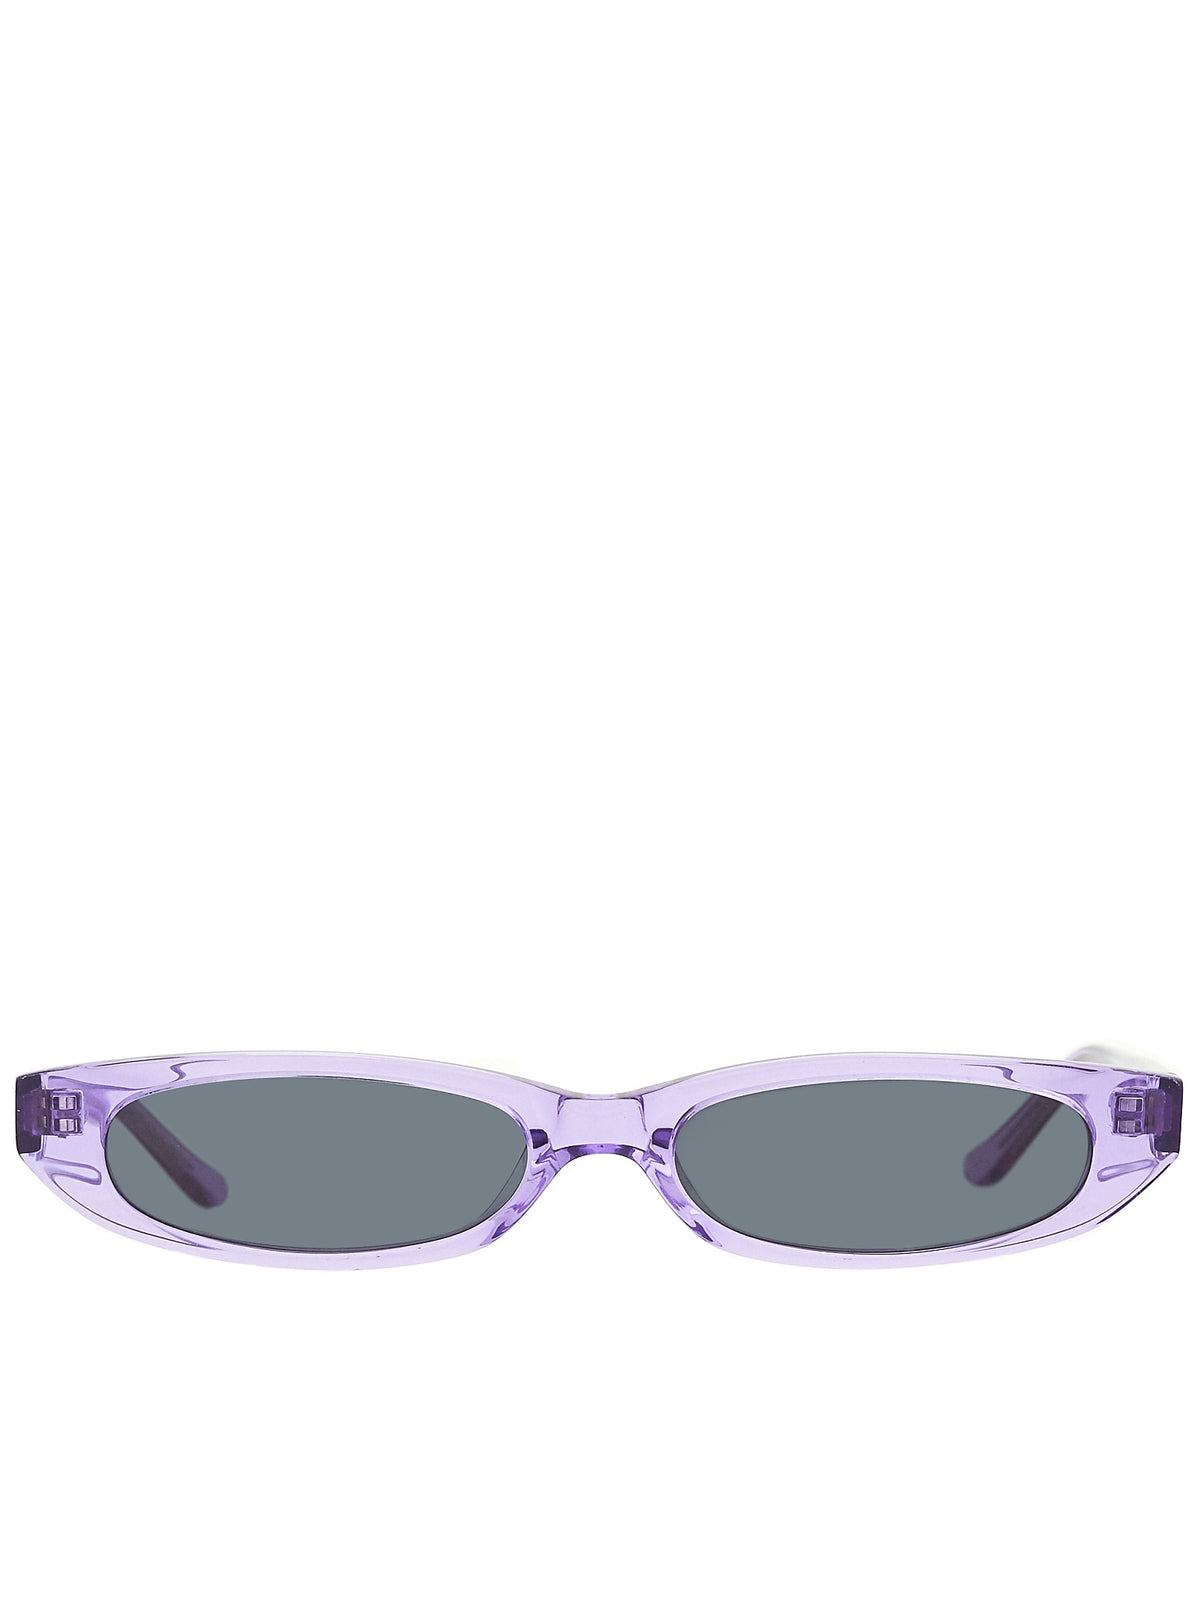 Roberi & Fraud Purple Sunglasses - Hlorenzo Front